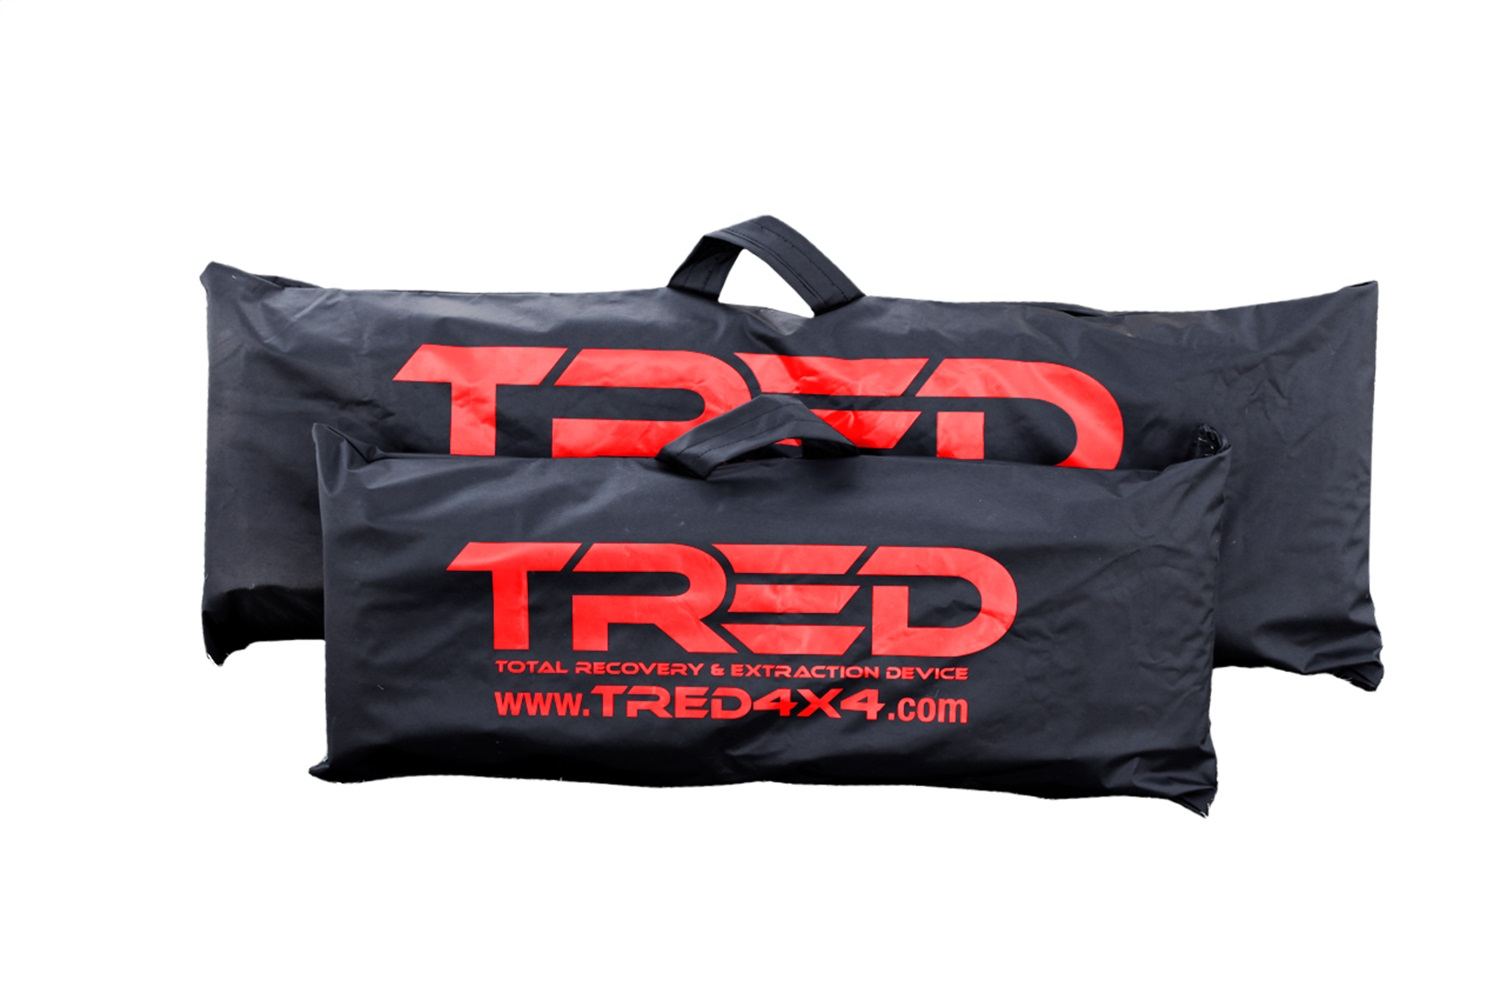 ARB 4x4 Accessories TB1100 Recovery Board Carrying Bag